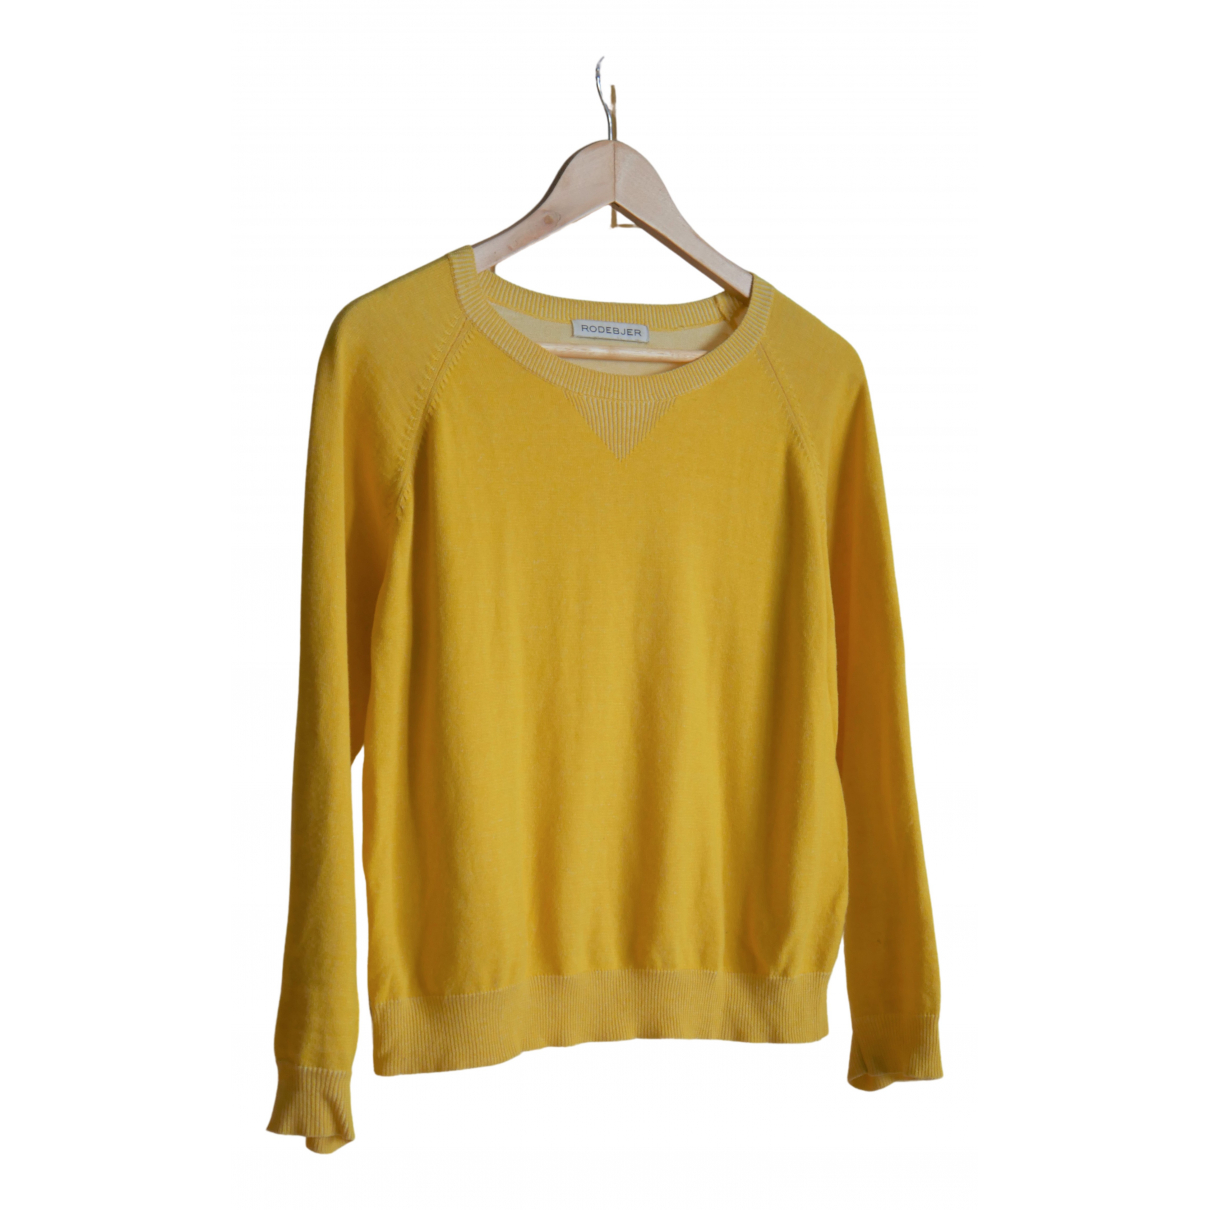 Rodebjer \N Yellow Cotton Knitwear for Women S International